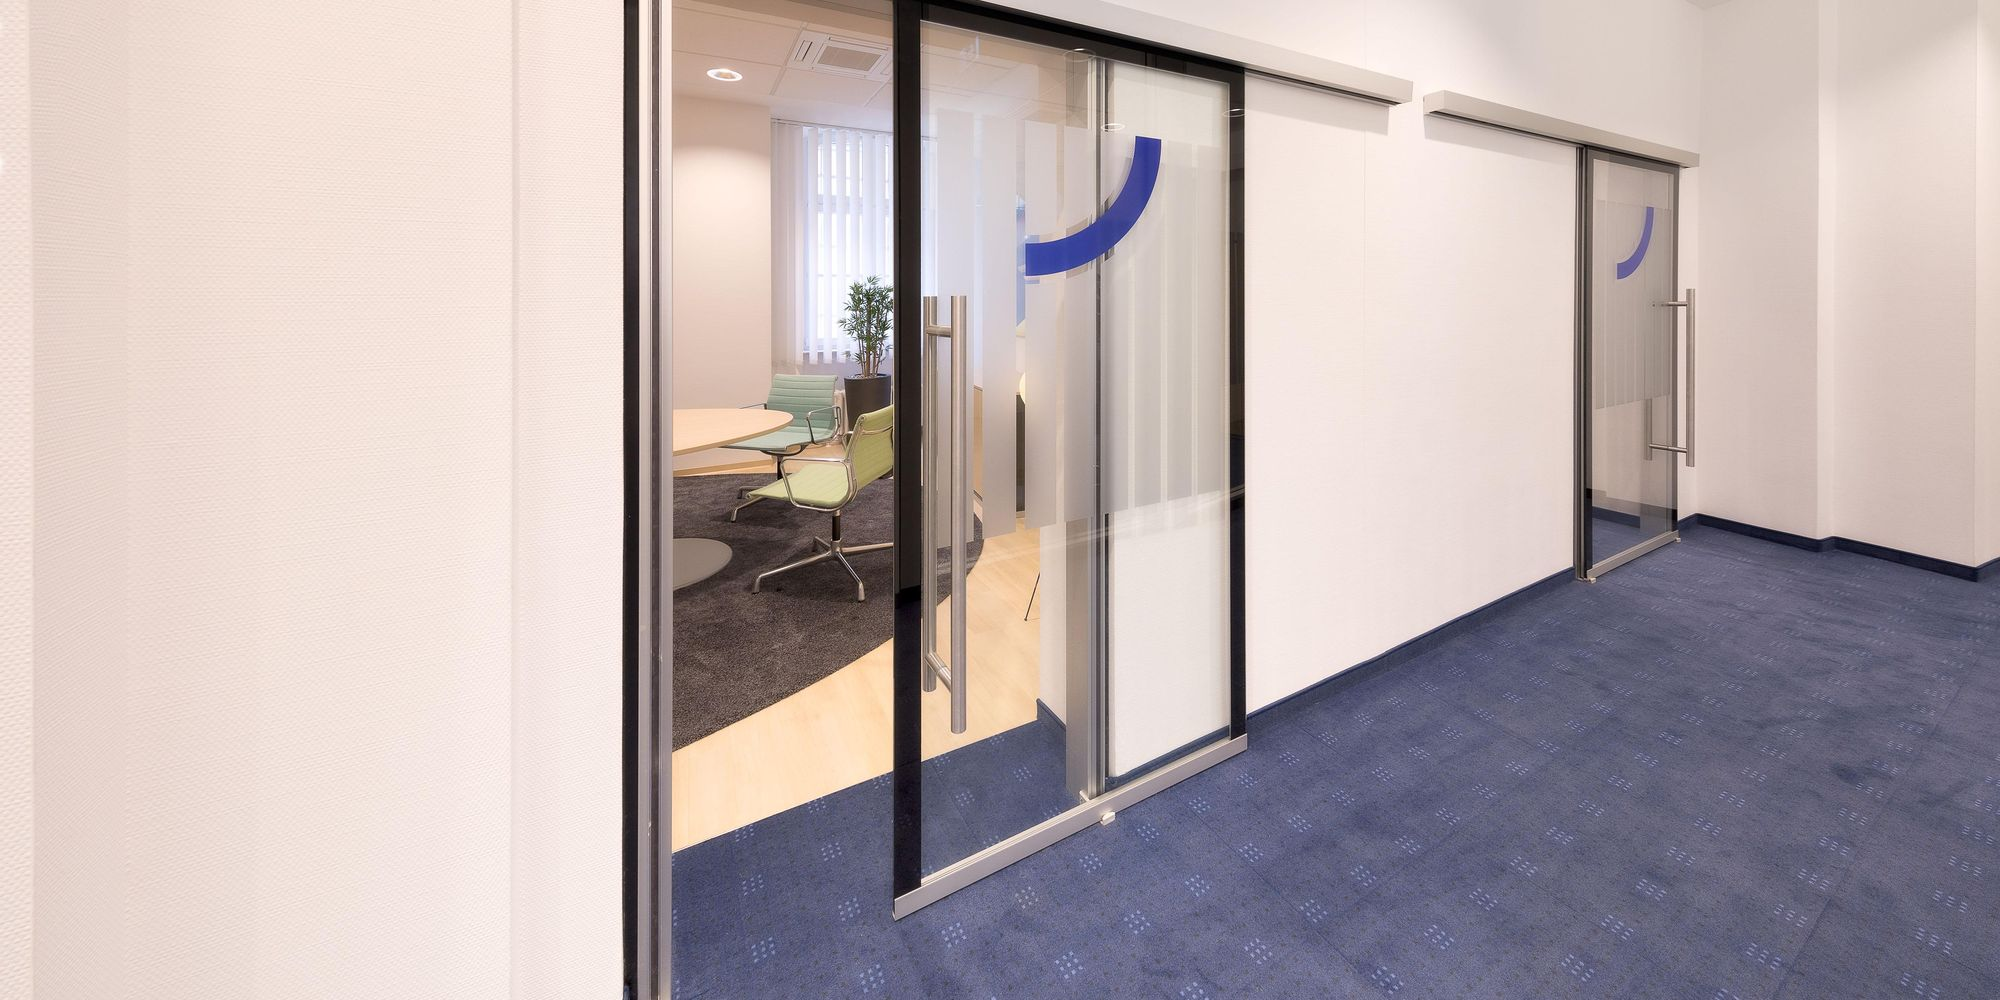 All-glass sound-insulating sliding door installed as front wall